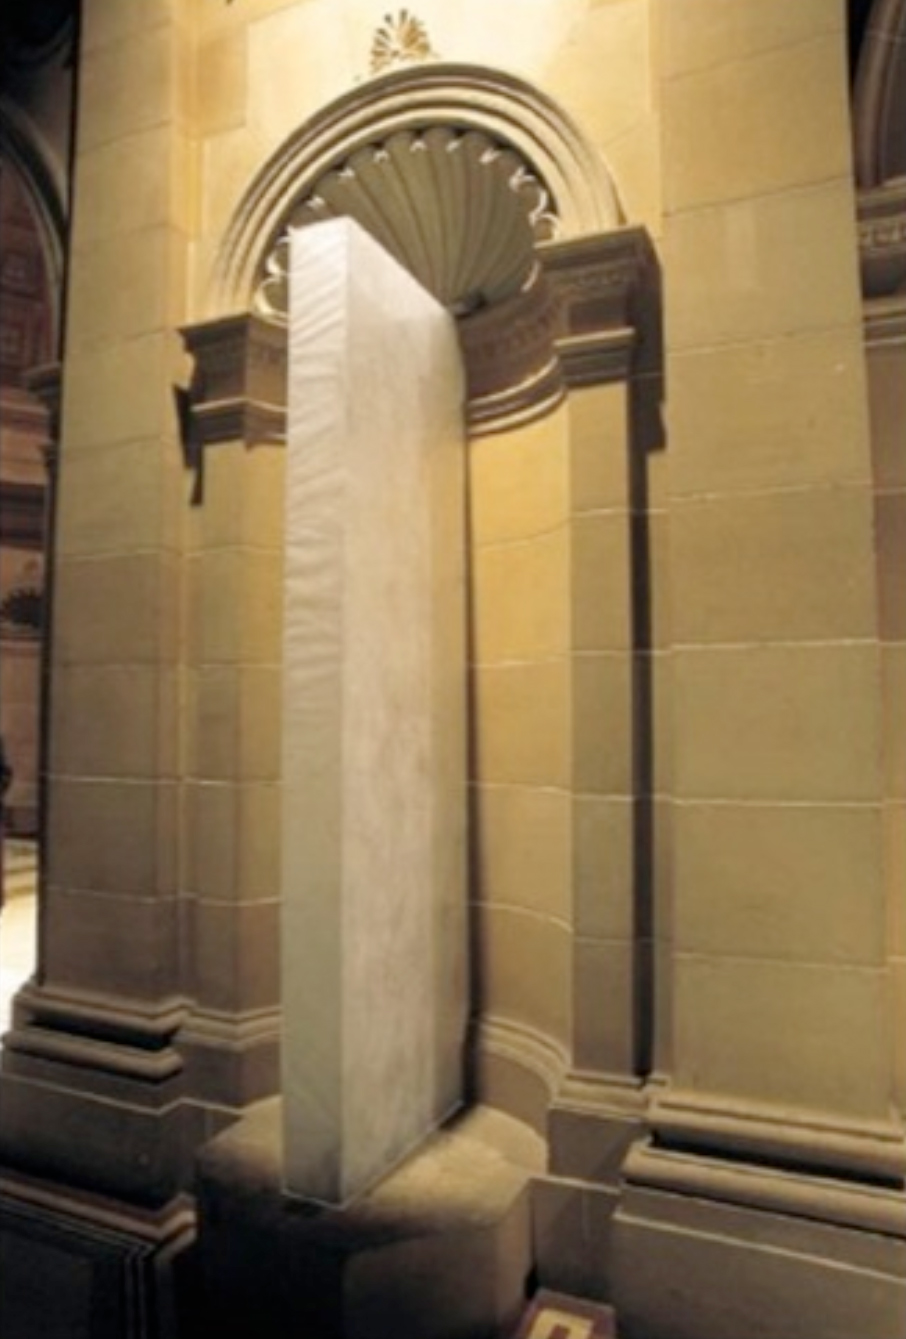 'AGNSW Entrance'; perspex, cable, sewn interfacing, steel plate, dimensions variable